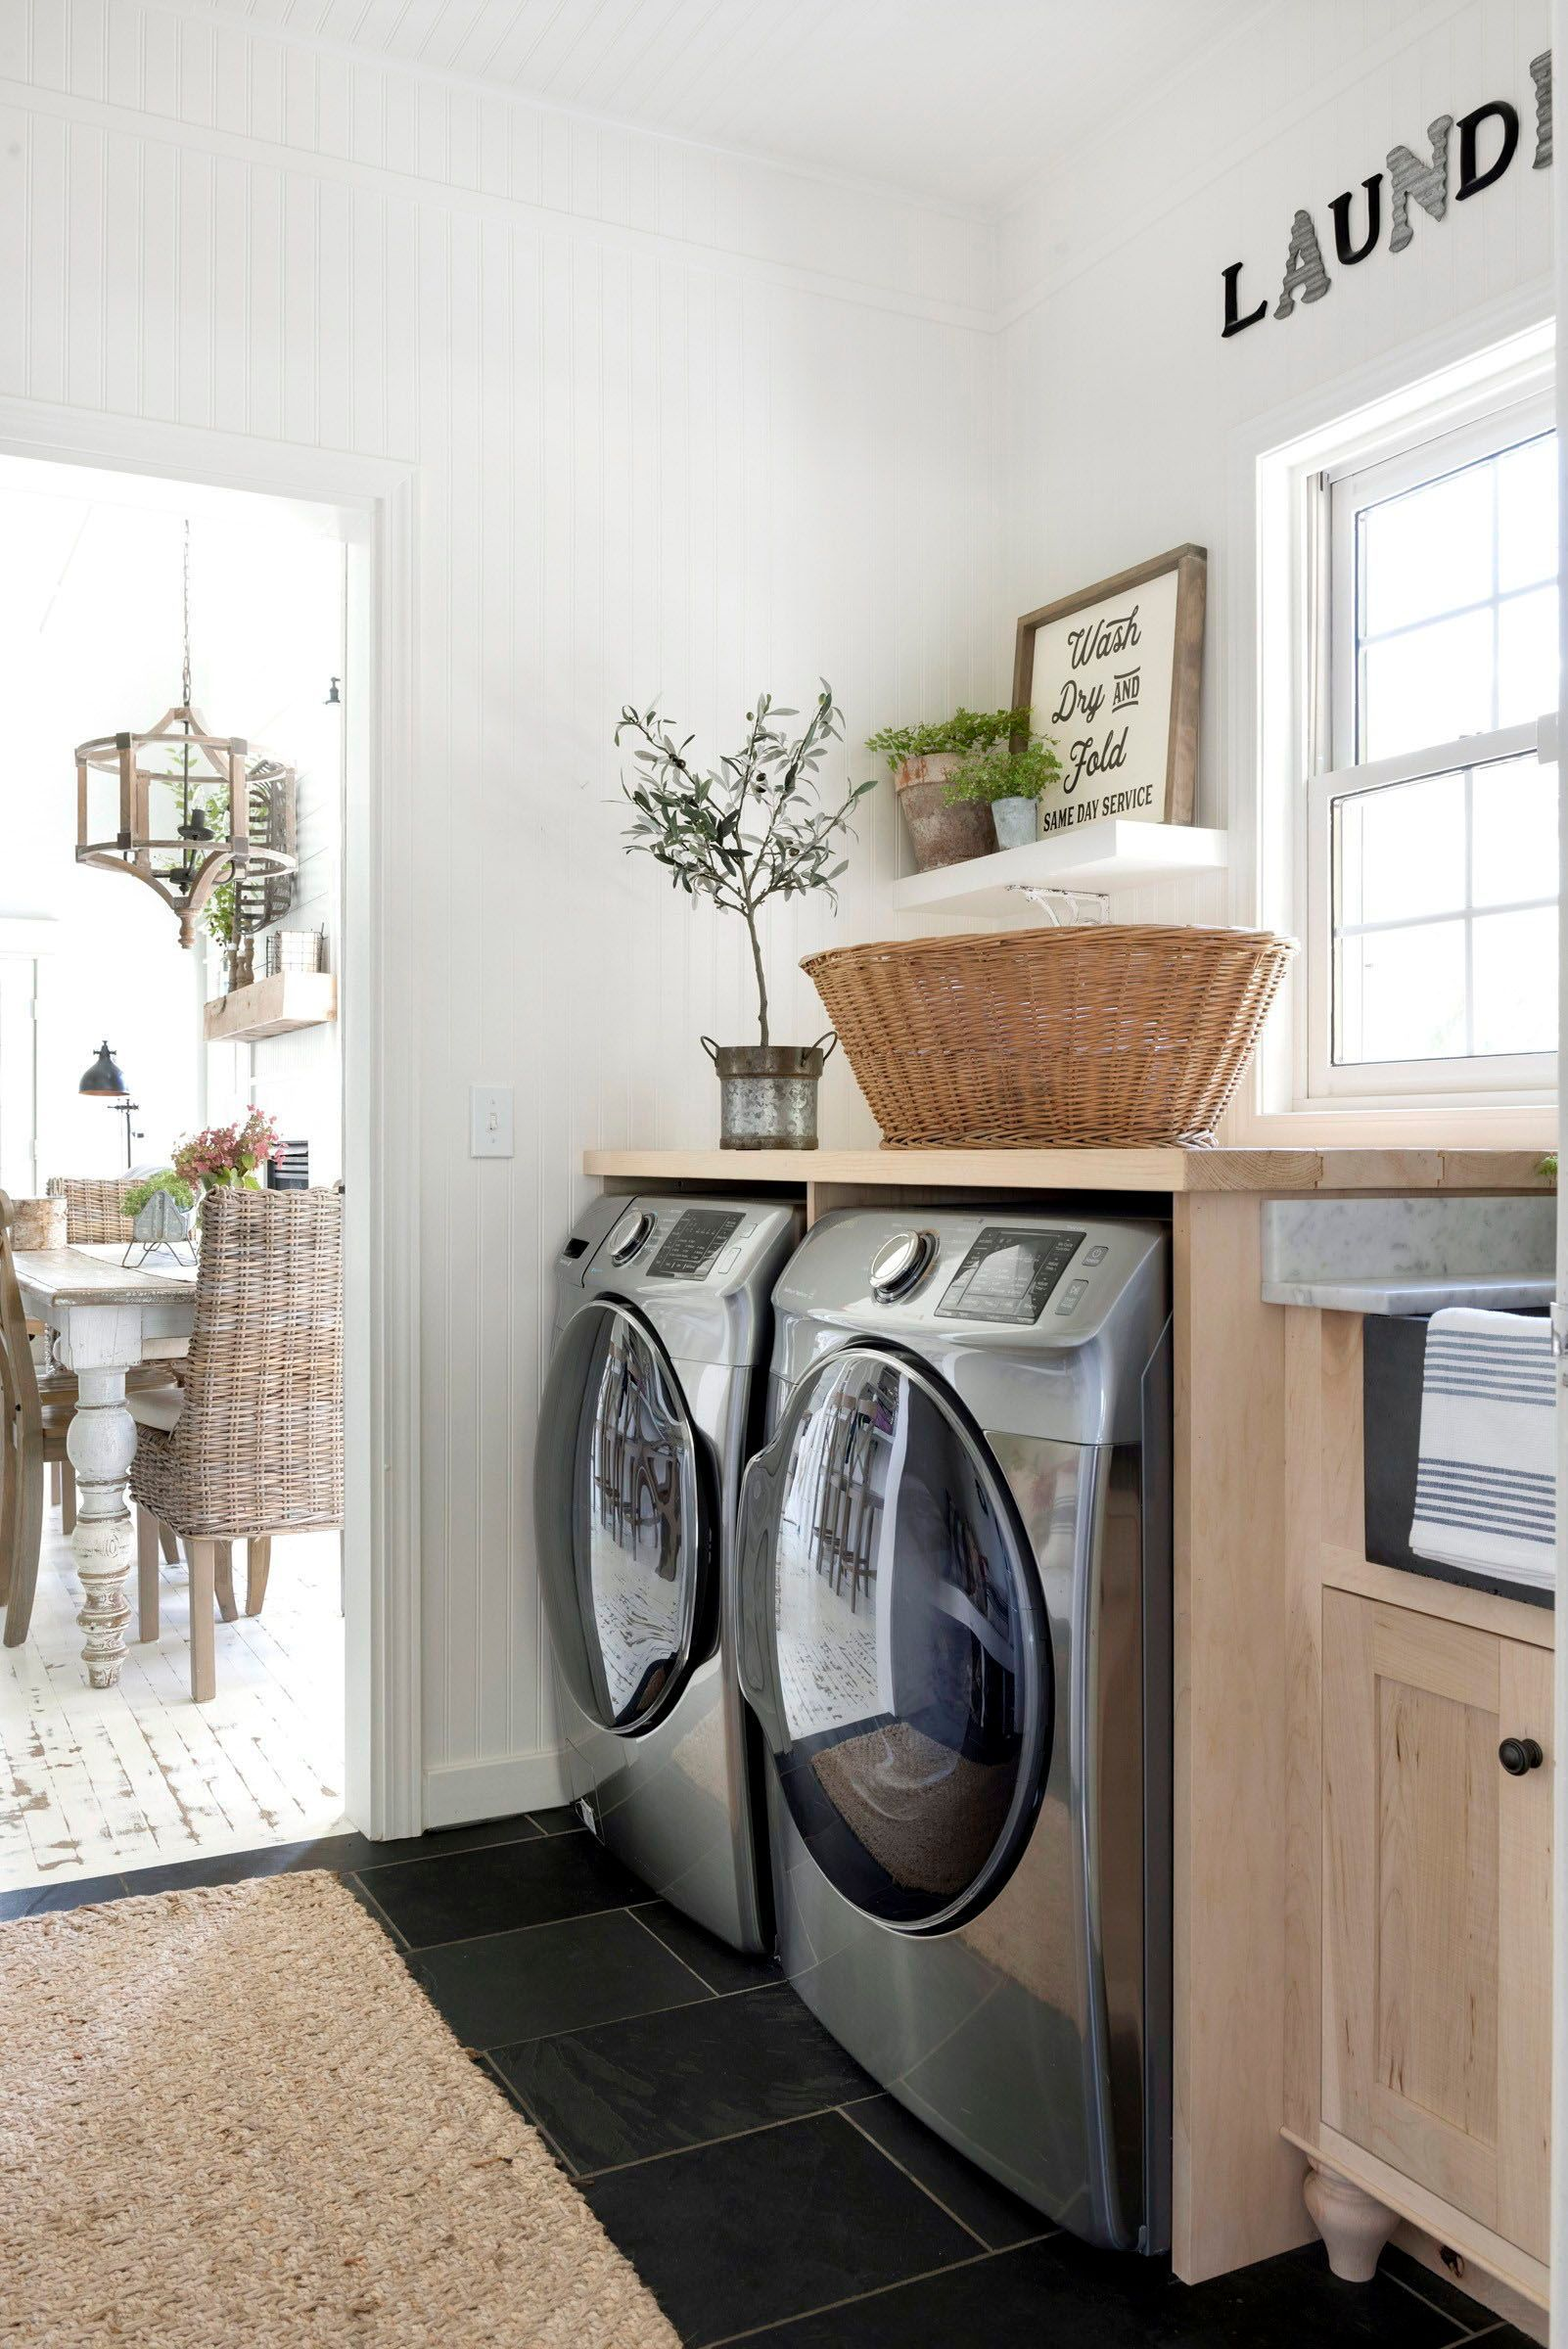 Dreamiest Details In This Modern Farmhouse Style Home Tour In Minnesota Laundry Room Design Laundry Room Room Design